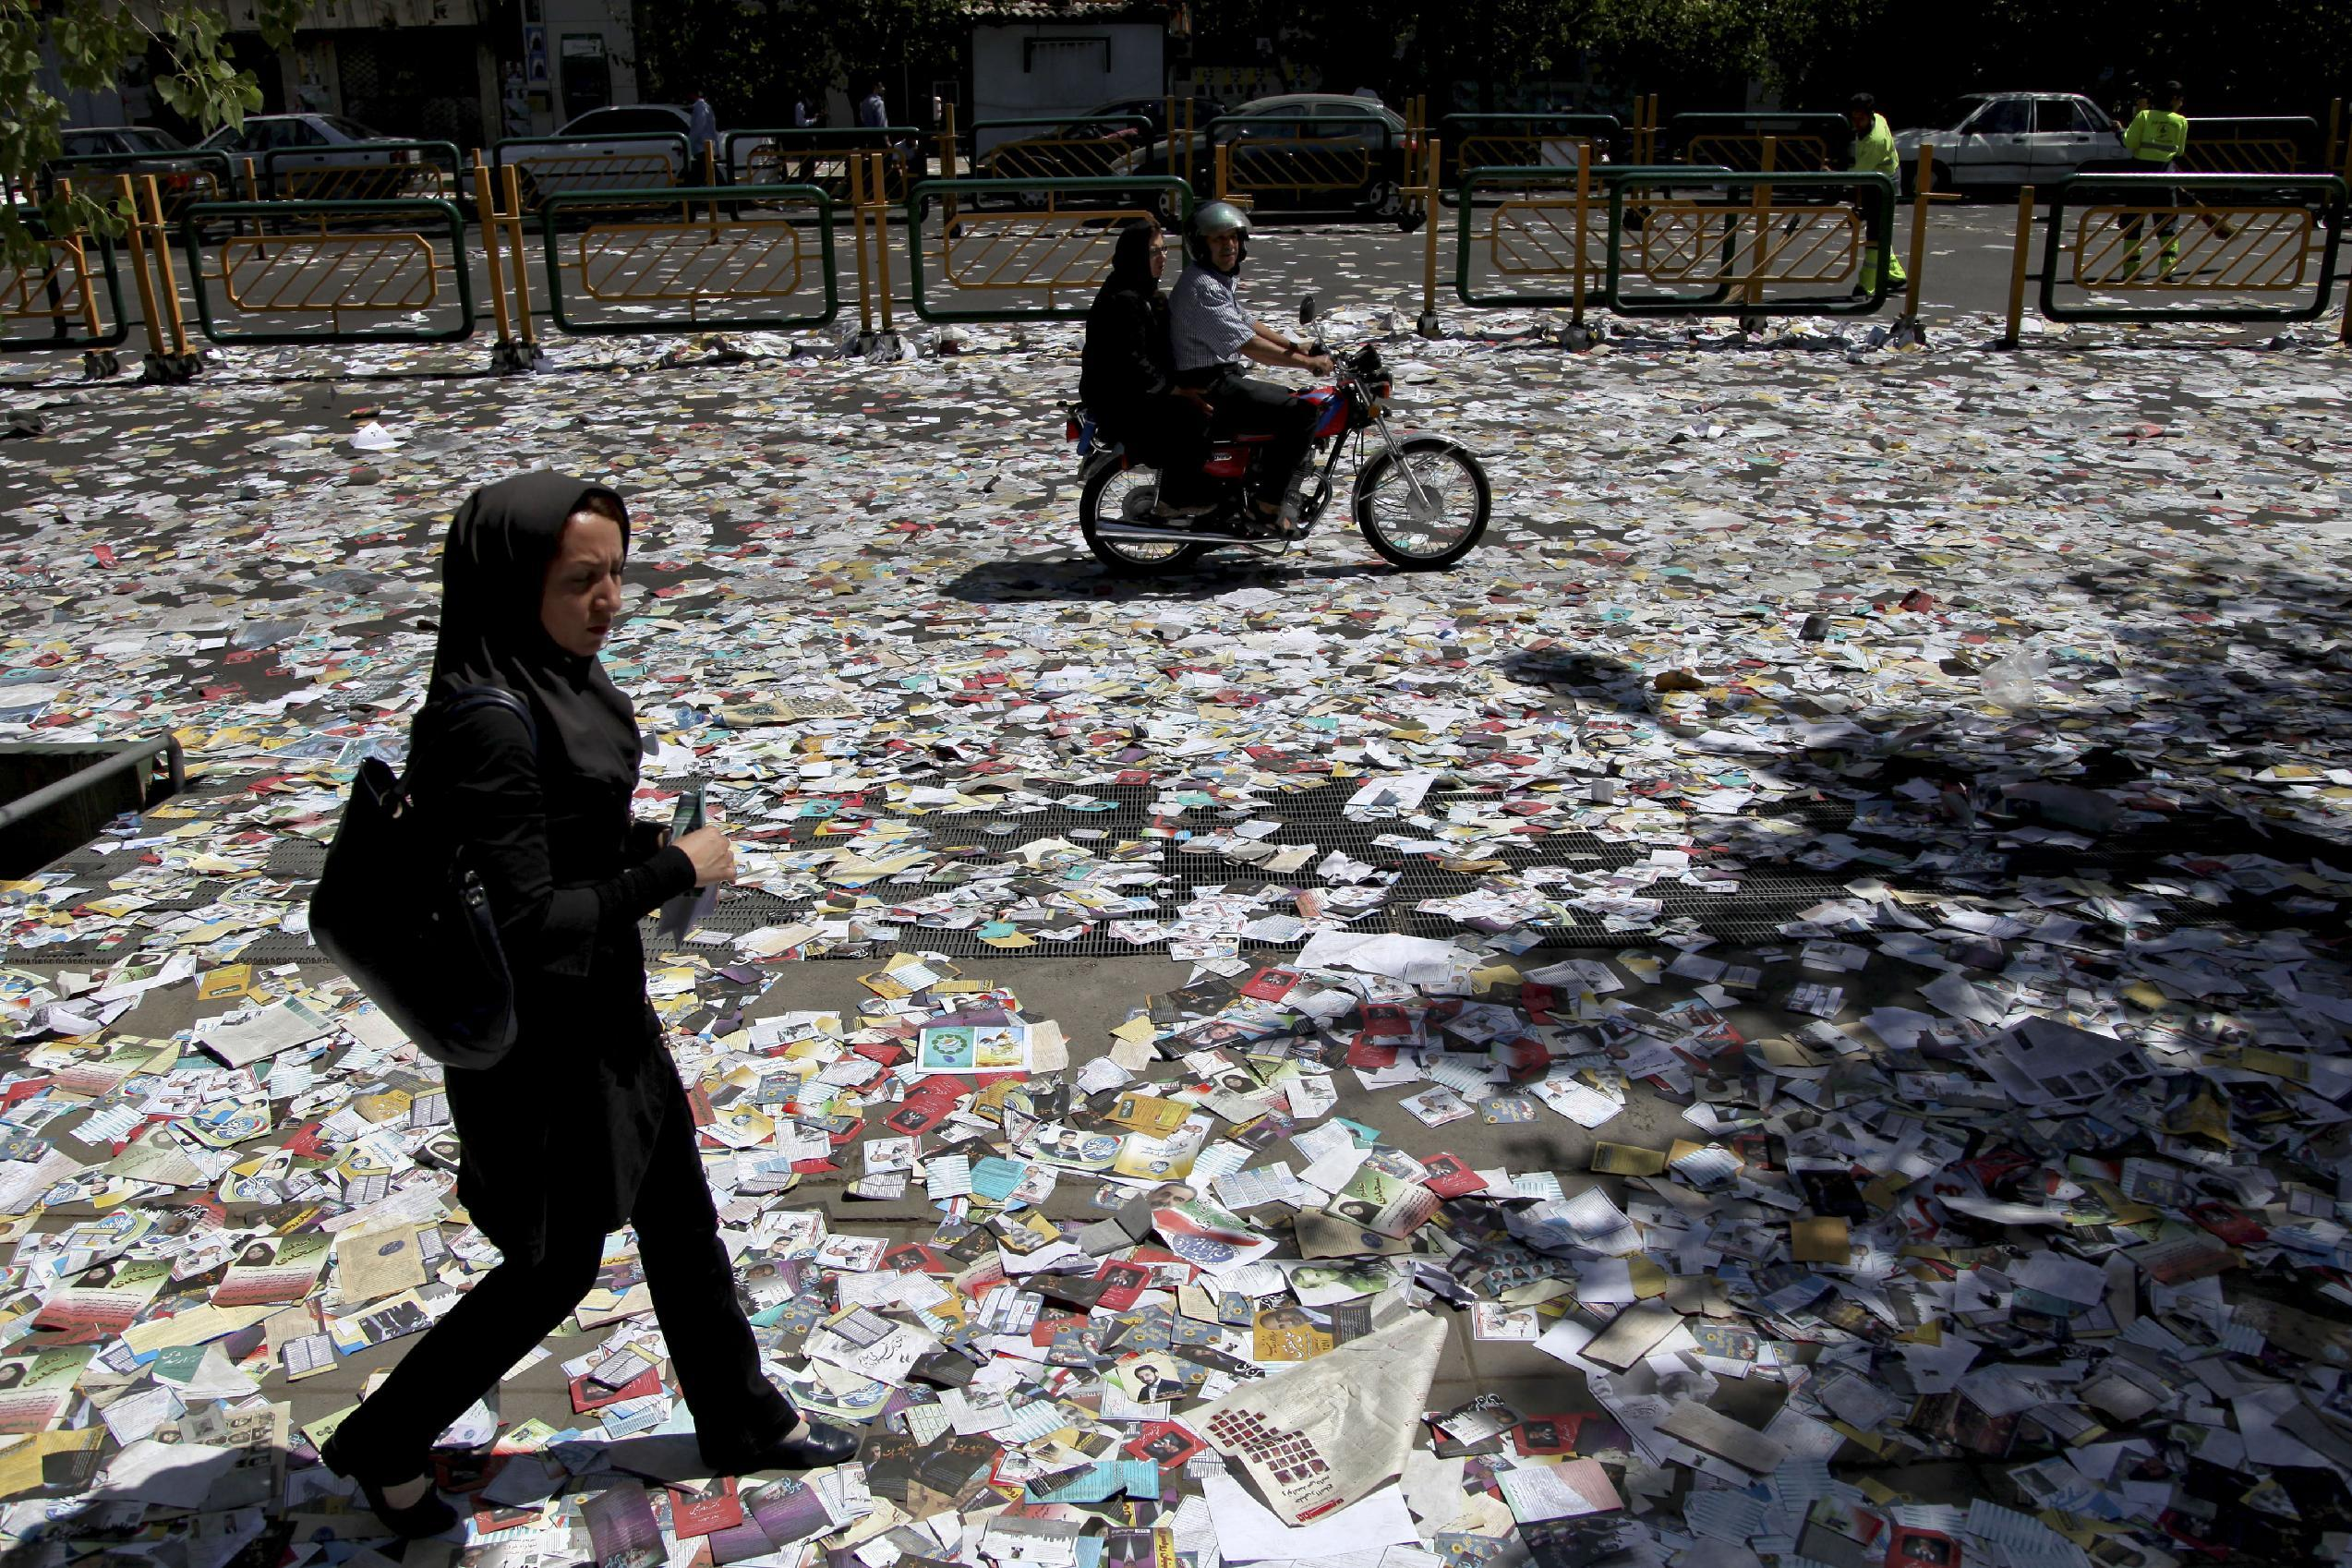 People make their way walking over electoral leaflets, covering the street after Friday prayers in Tehran, Iran, Friday, June 7, 2013. Iranian Presidential election will be held on June 14, 2013. (AP Photo/Ebrahim Noroozi)